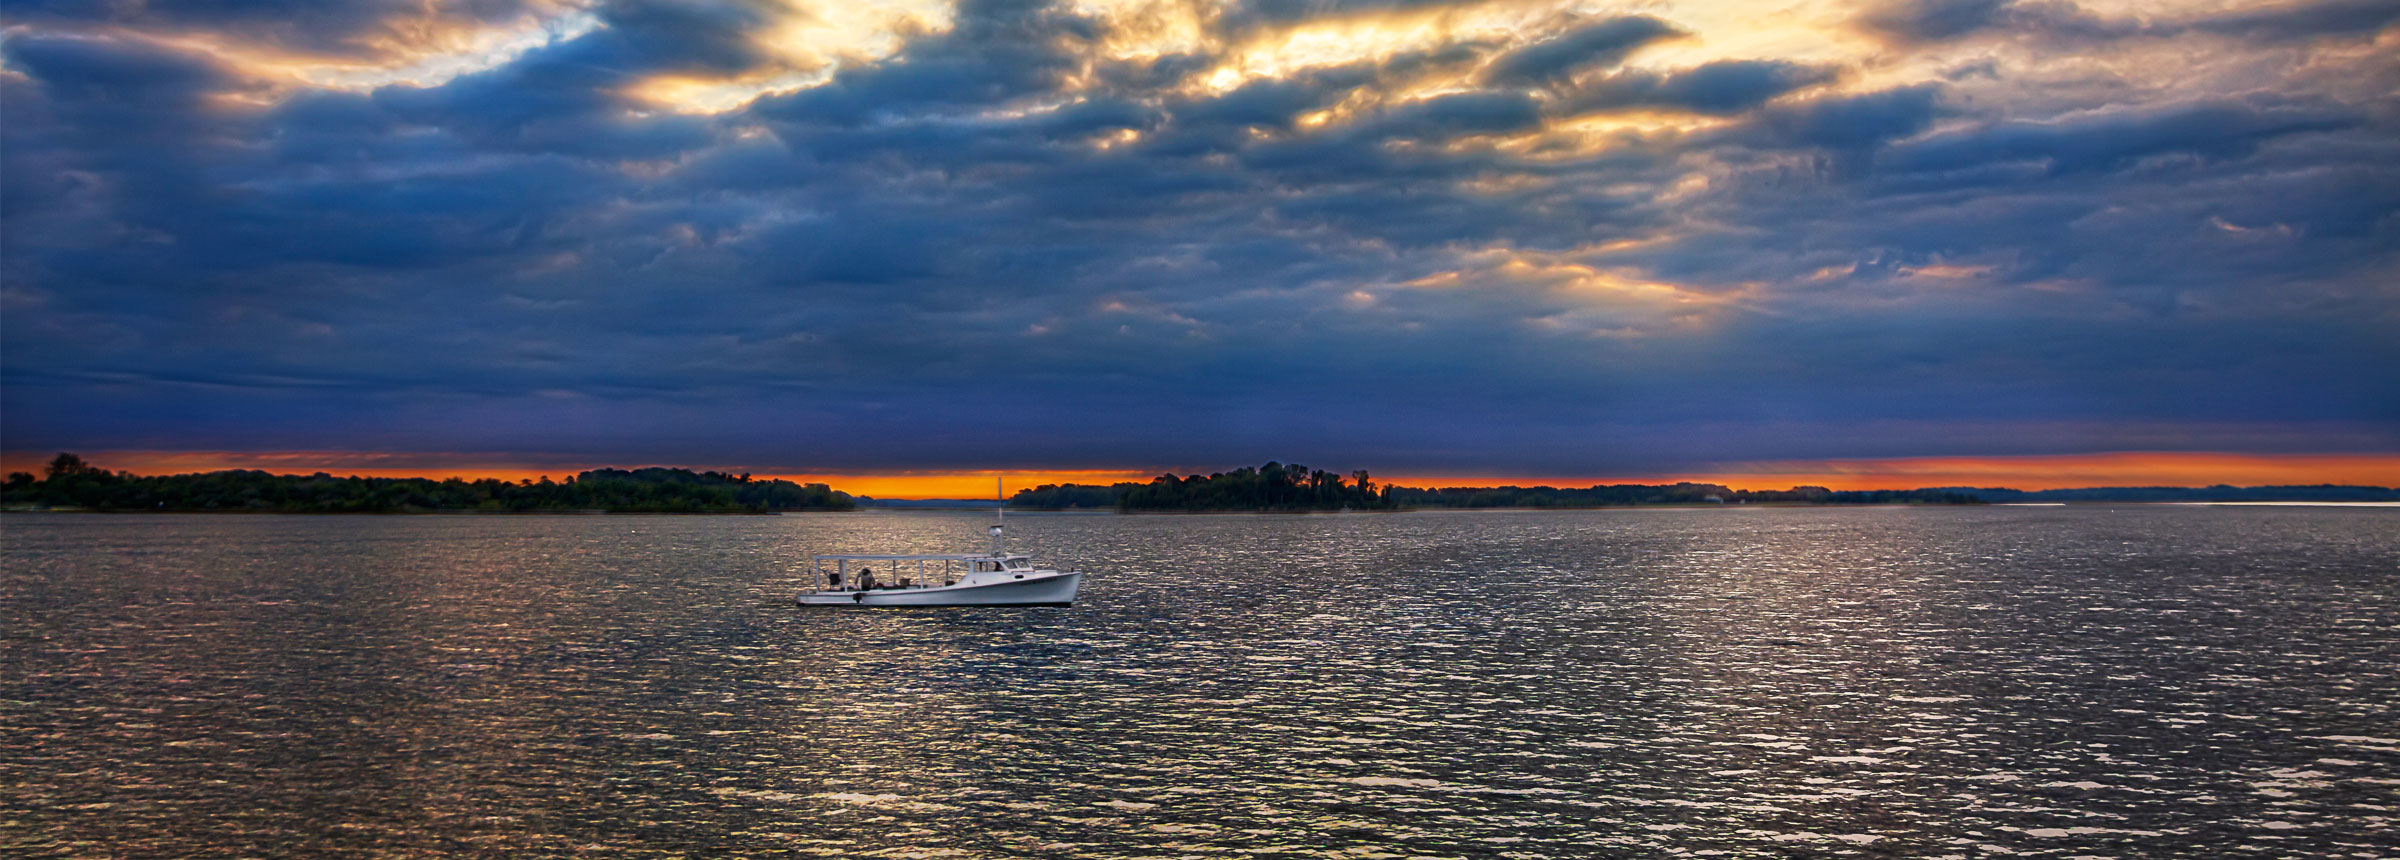 Choptank River, Maryland